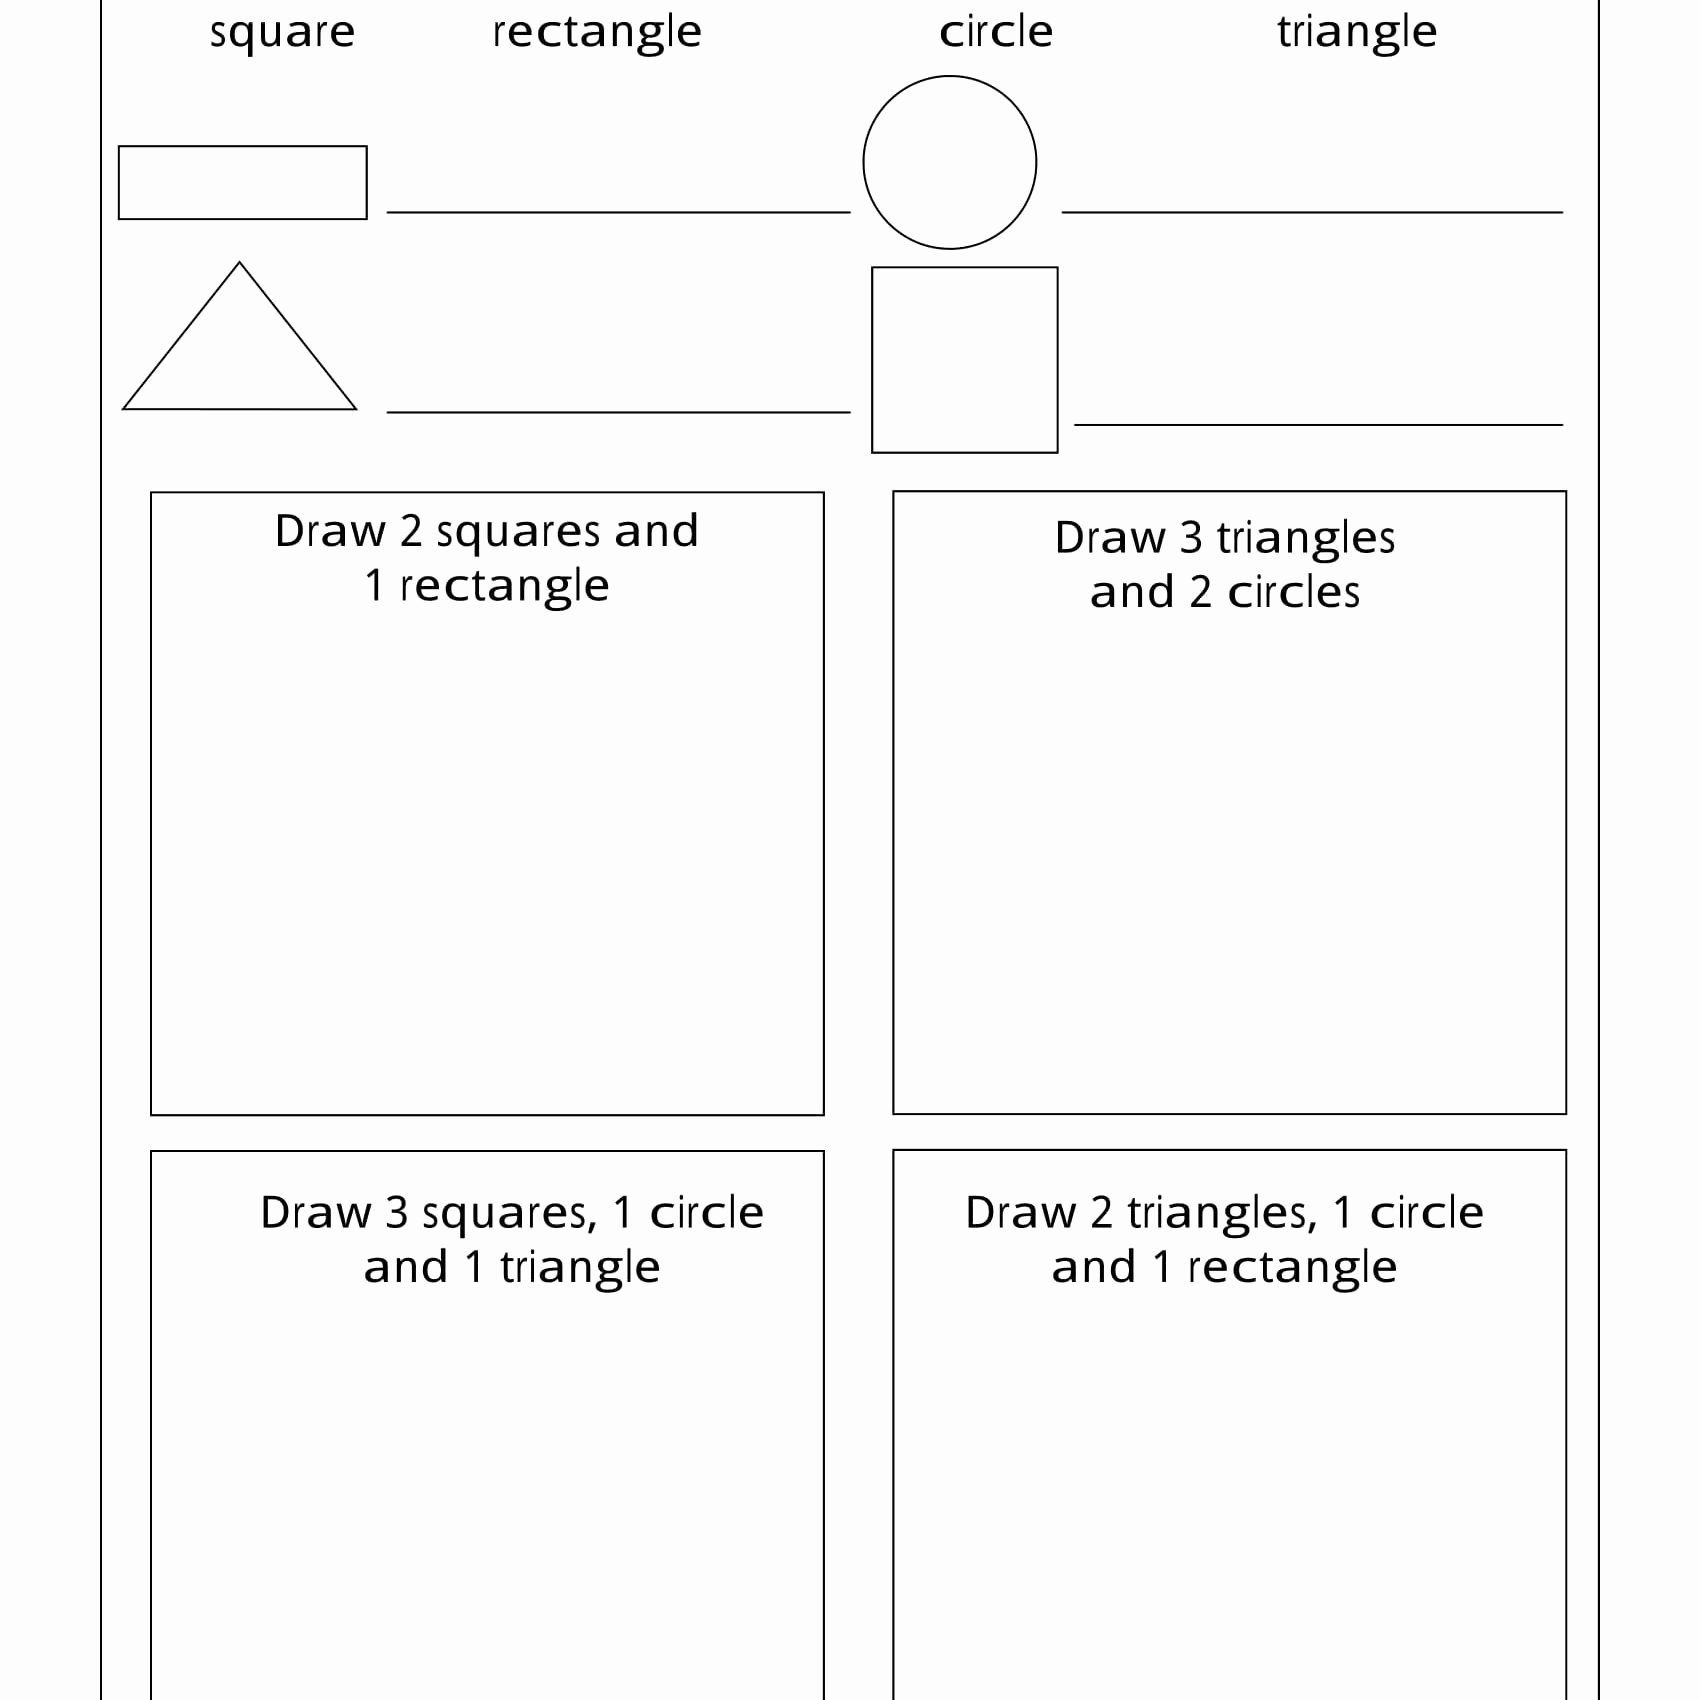 Coloring Activities For Young Learners Inspirational Geometry Worksheets For Students In 1st Grad In 2020 Geometry Worksheets 1st Grade Math Worksheets Math Worksheets